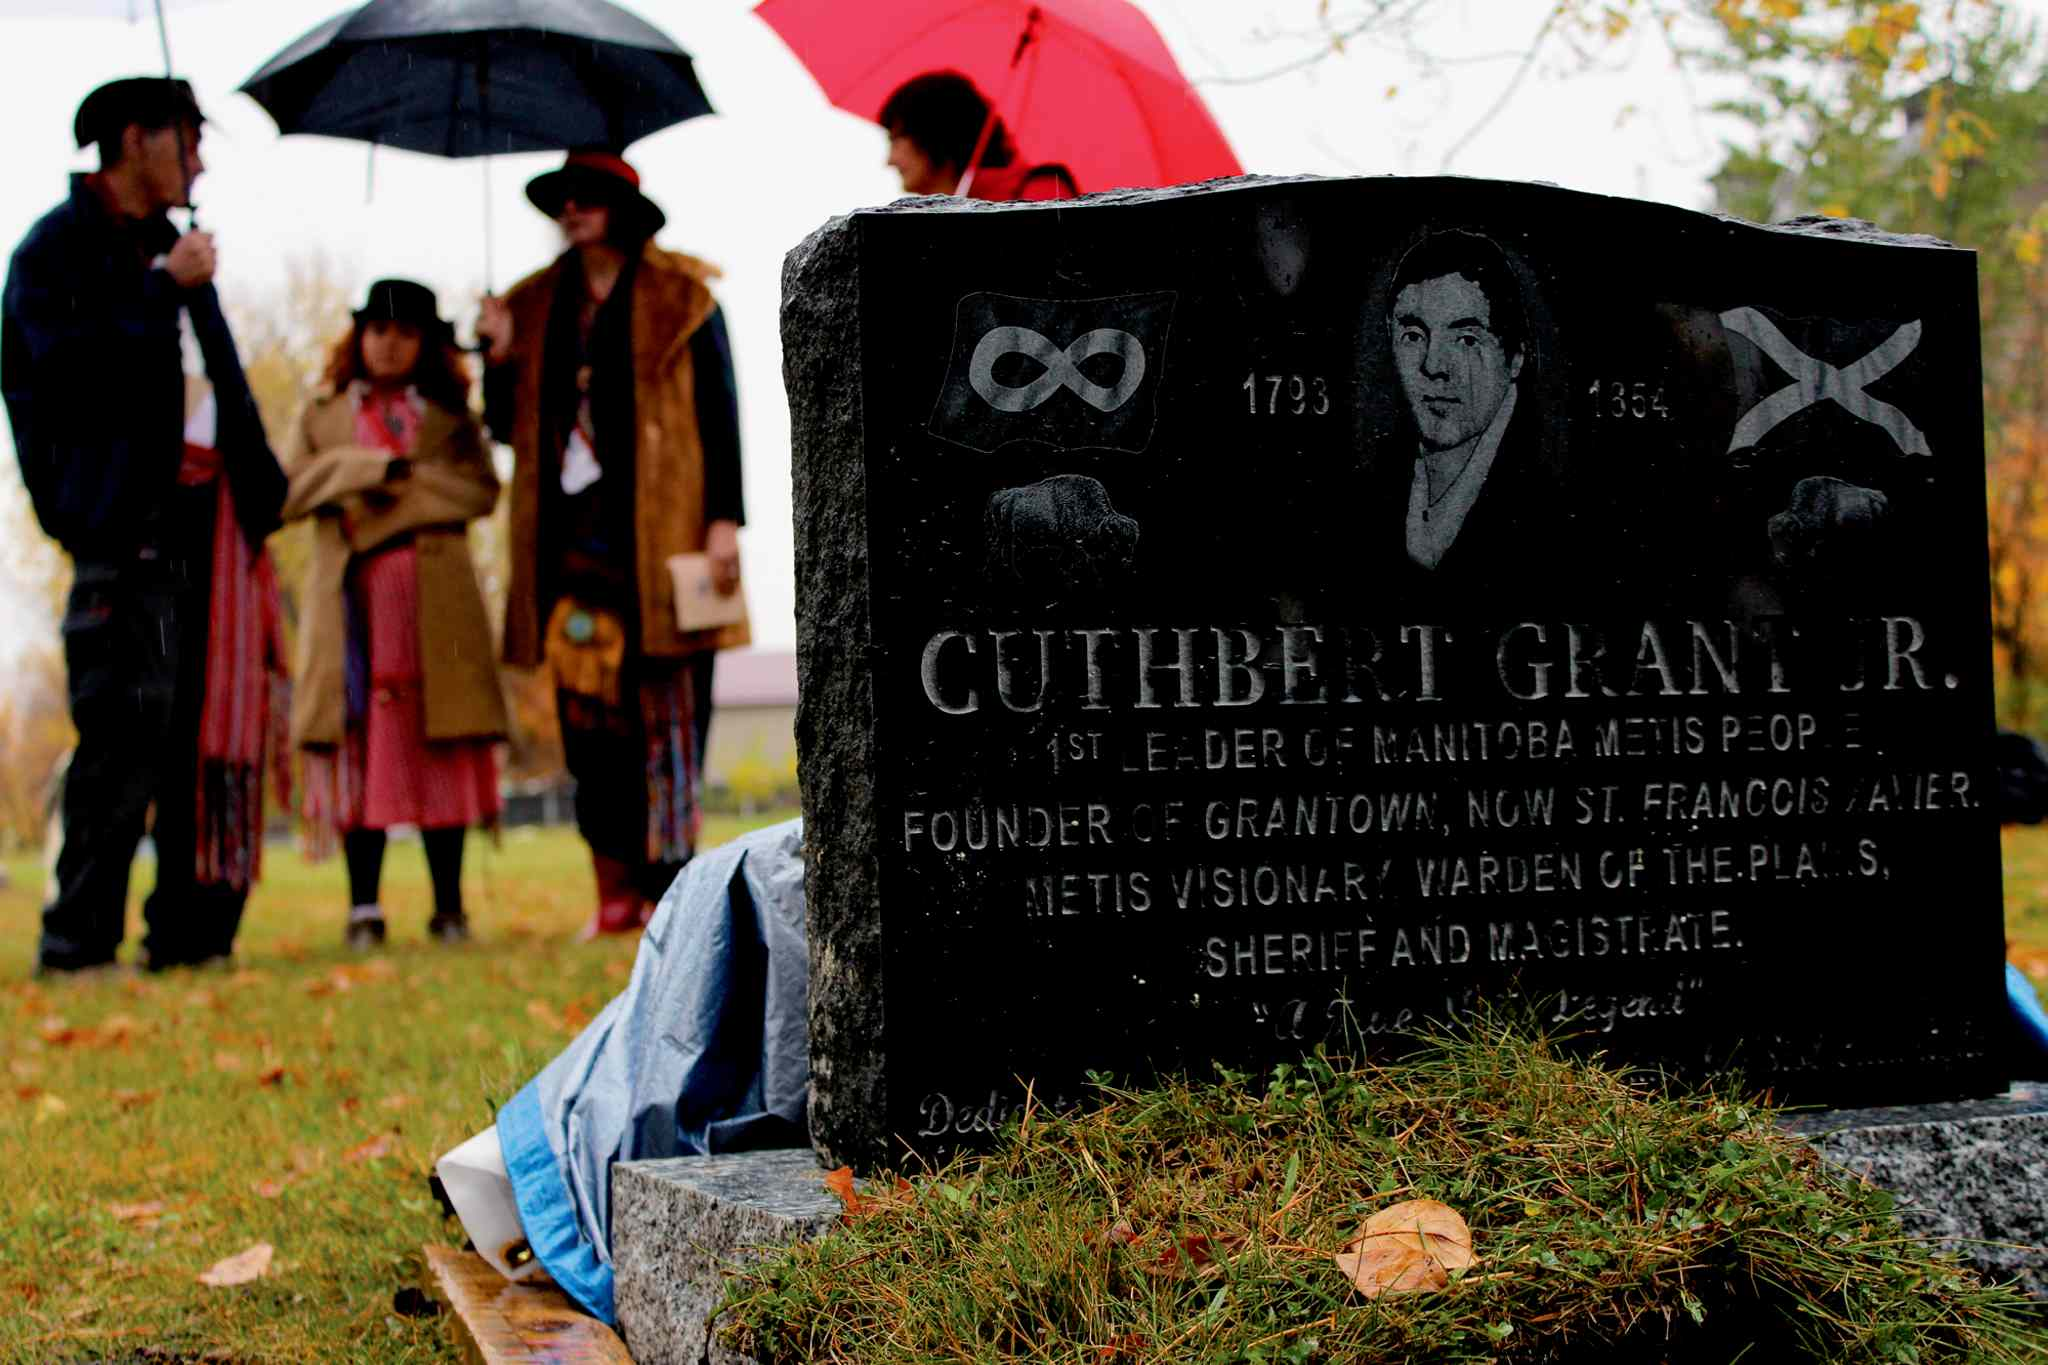 This marker in memory of Métis leader Cuthbert Grant was placed in the St. Francois Roman Catholic Parish cemetery on Sept. 28, 2013.